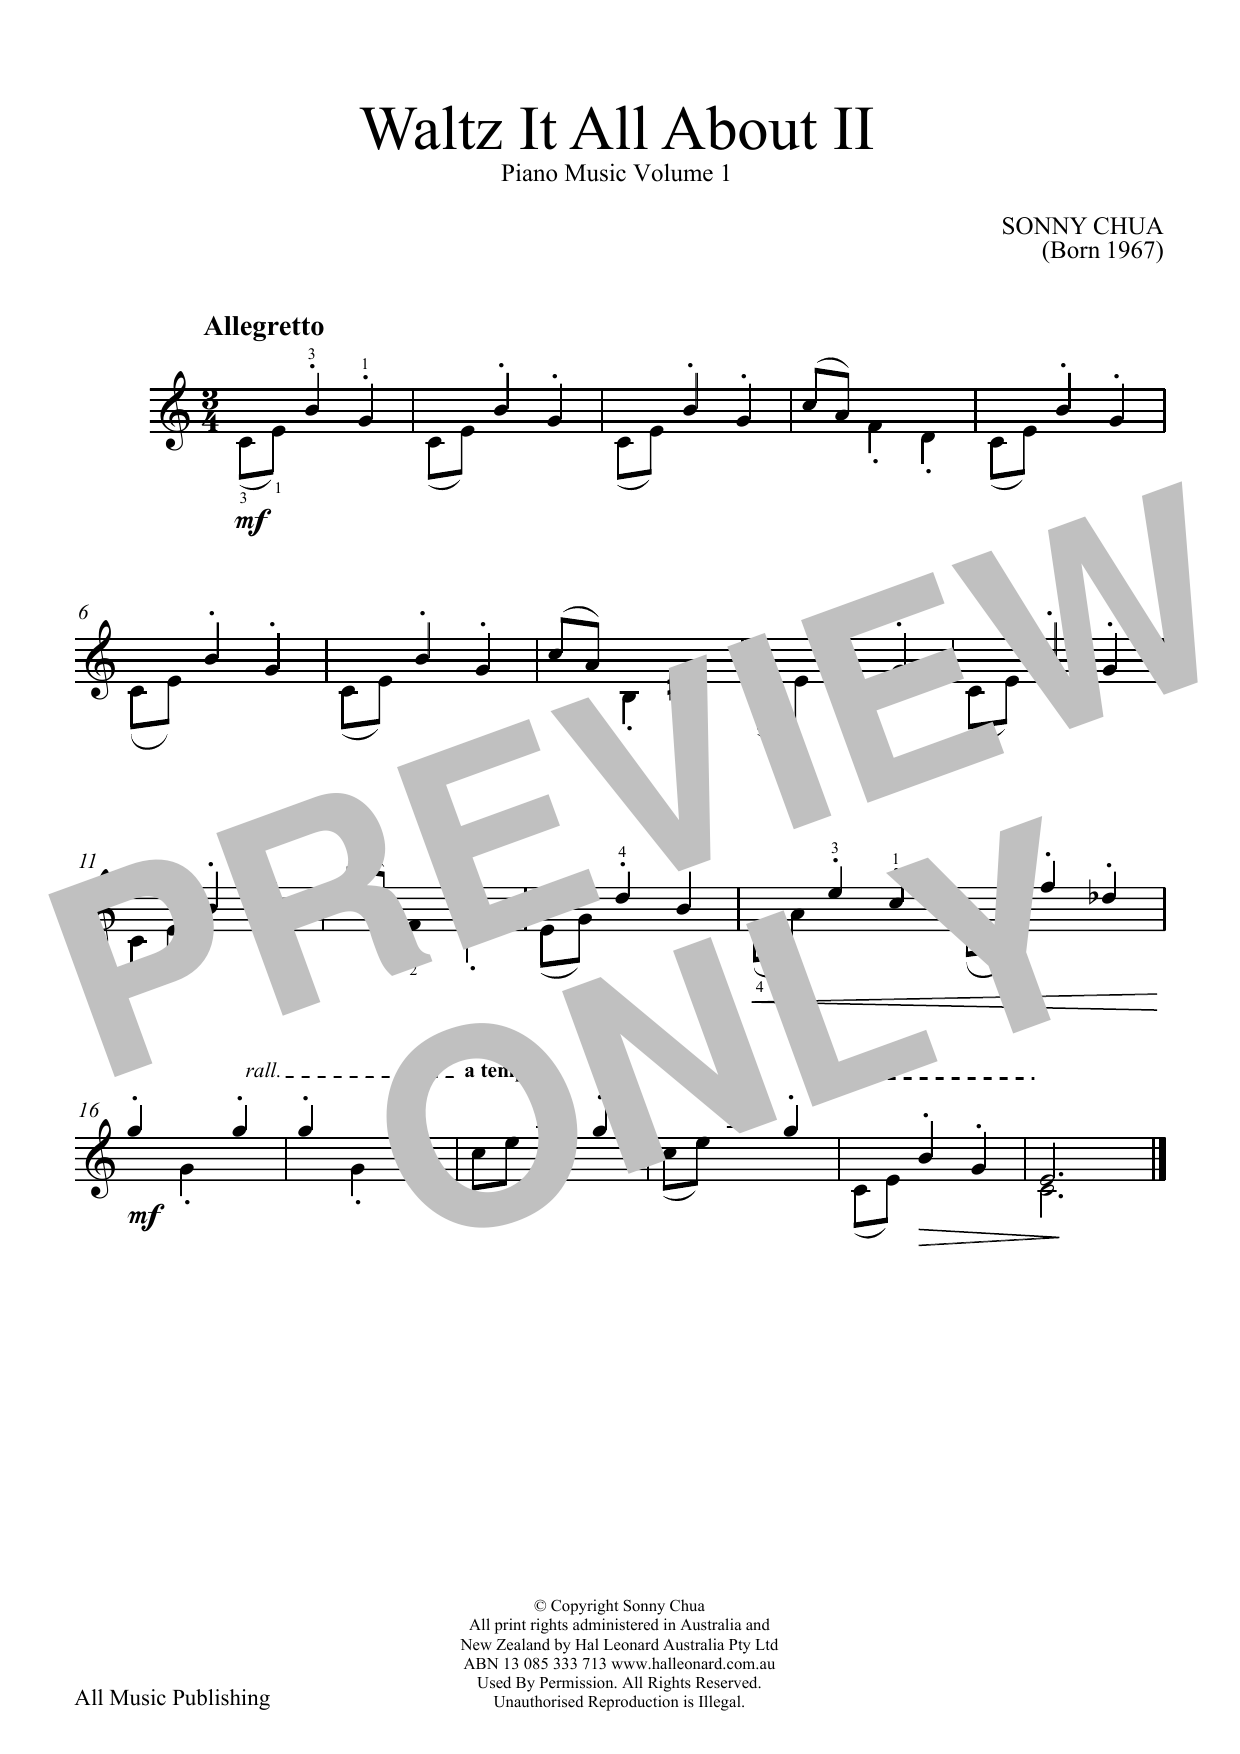 Sonny Chua Waltz It All About II (From Piano Music Vol 1) sheet music notes and chords